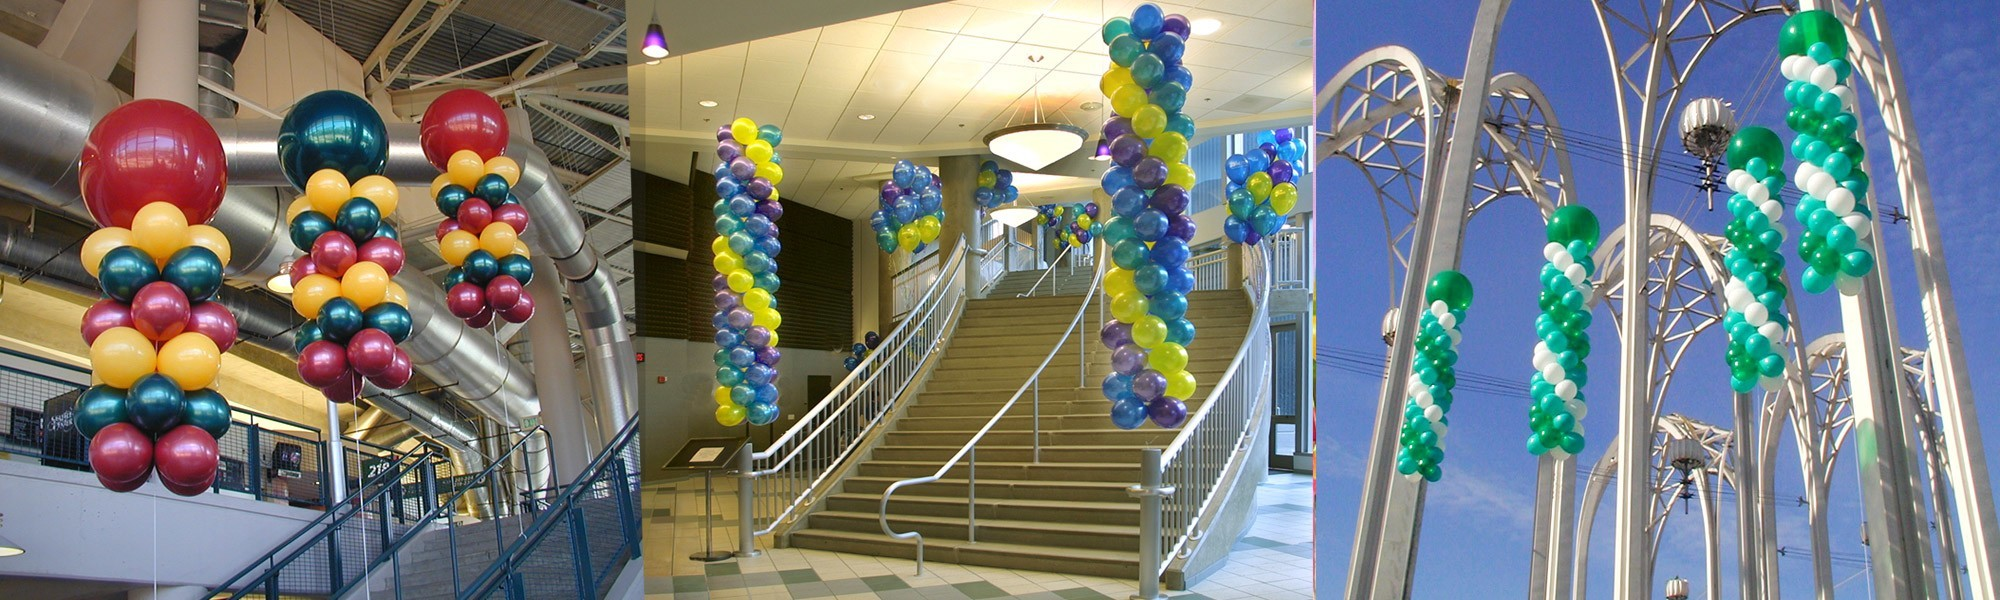 11in Latex Balloons - Columns - Aerial - Professionally Arranged and Hand Delivered by BalloonPlanet.com